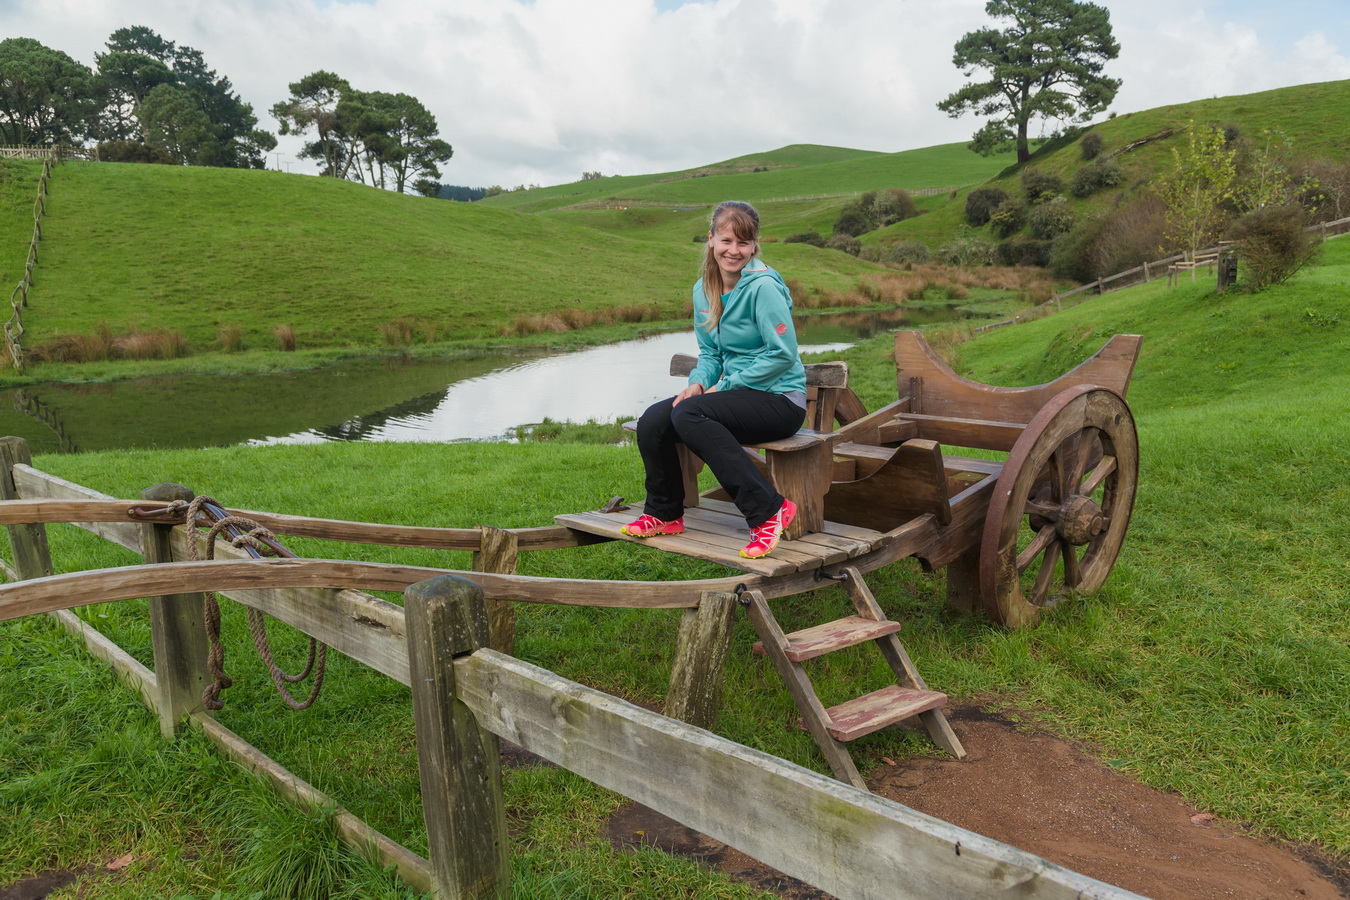 gandalf cart,The Hobbiton, The Shire,Хоббитшир, Удел, Хоббитания, Заселье, Край,Matamata, North Island ,New Zealand